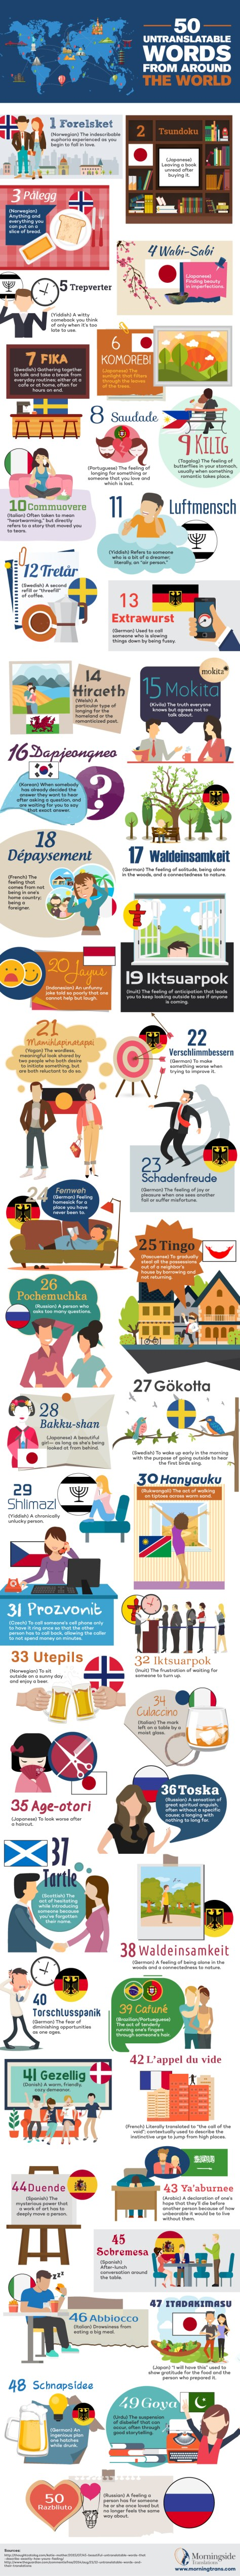 MorningTrans-50 untranslatable words